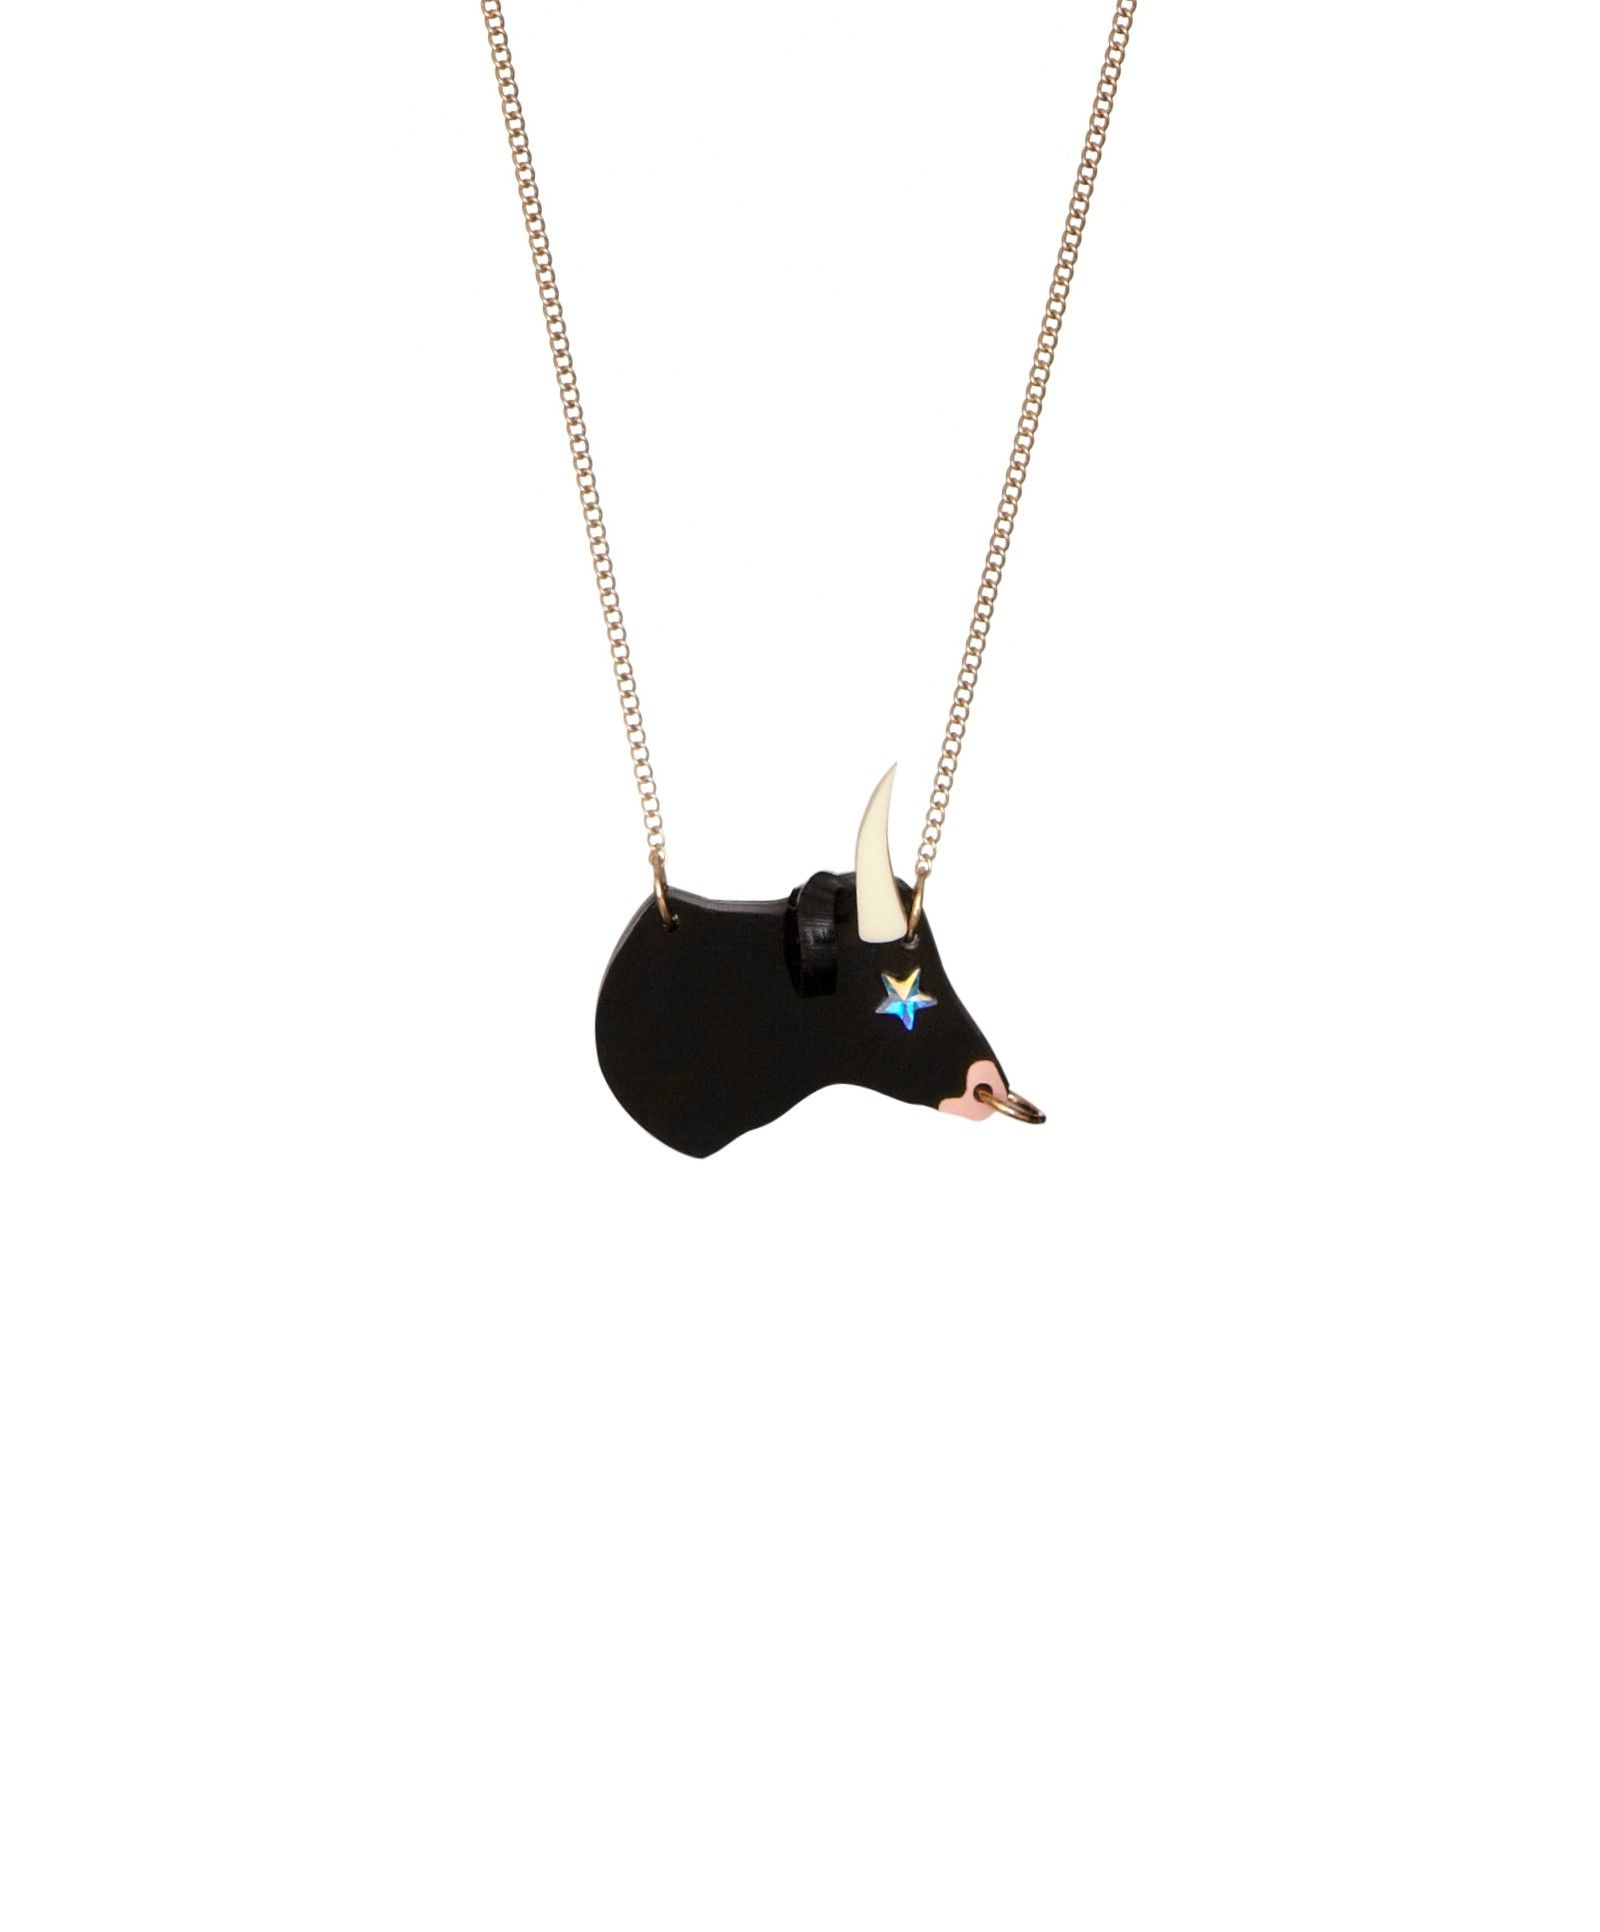 Taurus Birthday Necklace - Designed to celebrate the 12 signs of the Zodiac, the Taurus Birthday Necklace is the perfect present. Laser cut in jet black acrylic, a bull appears with hand inked detailing, a nose ring and a sparking star to create our playful twist on this classic symbol.